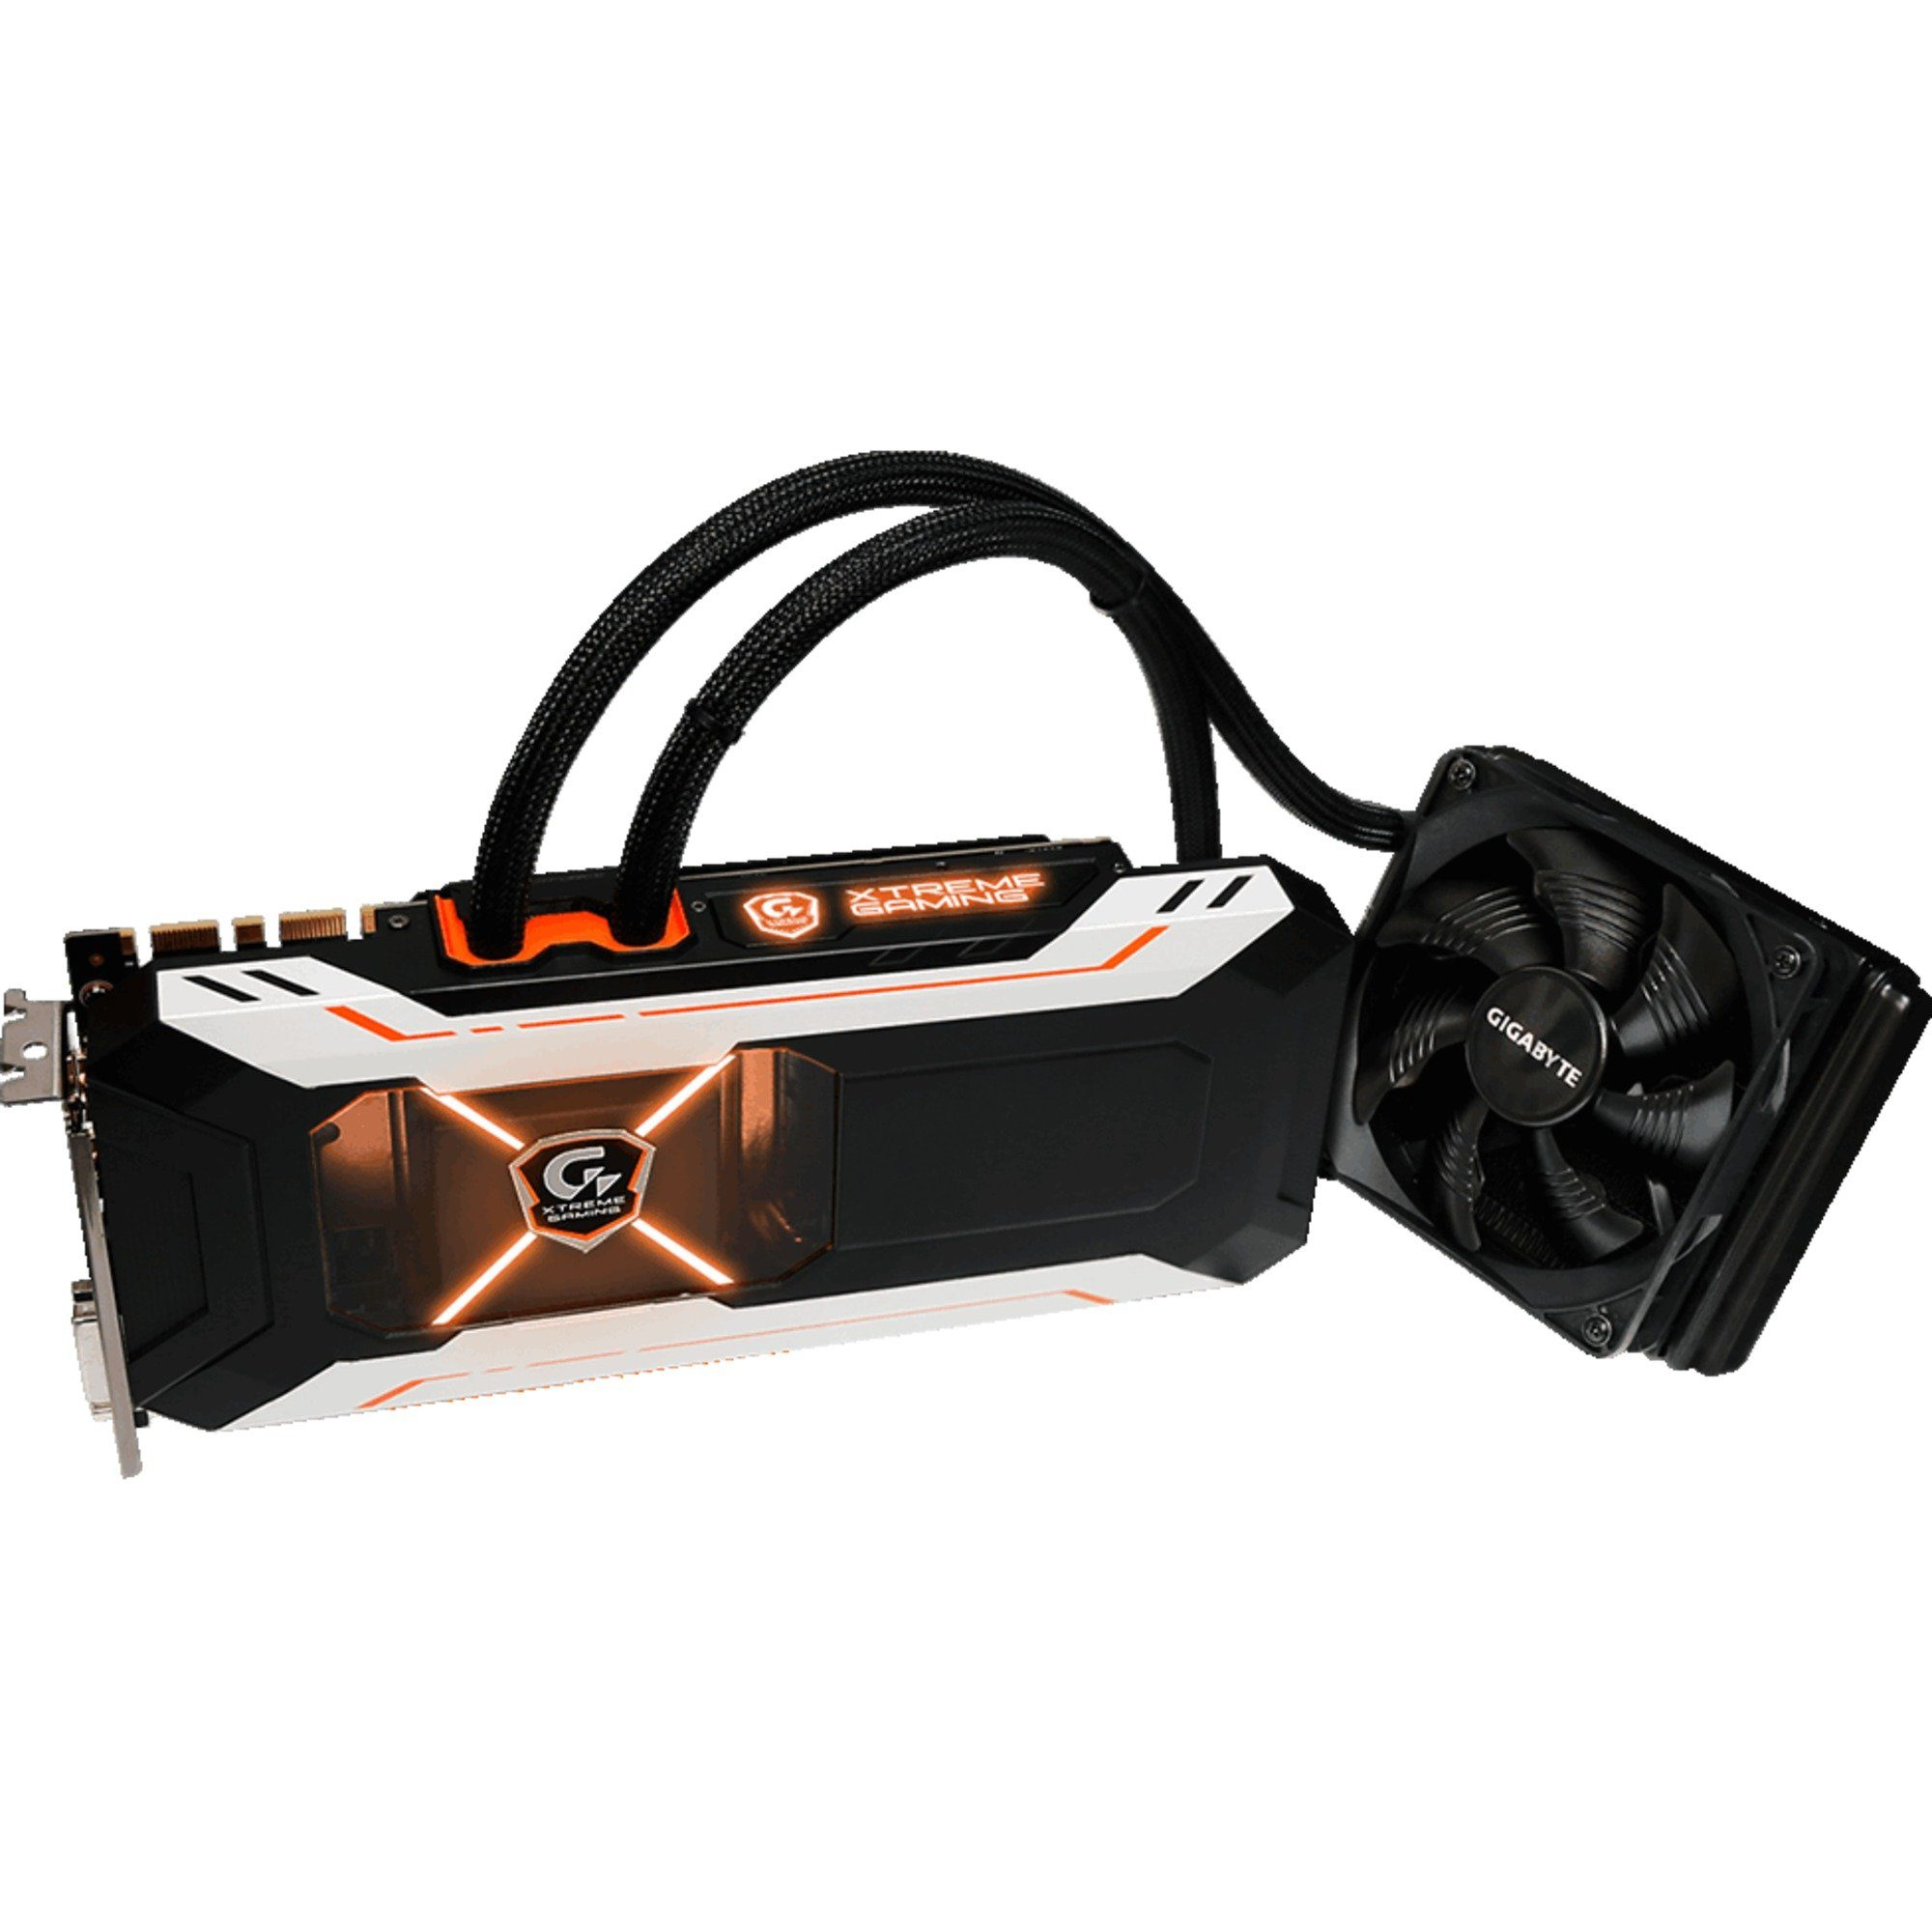 GIGABYTE Grafikkarte »GeForce GTX 1080 Xtreme Gaming Water Cooling«